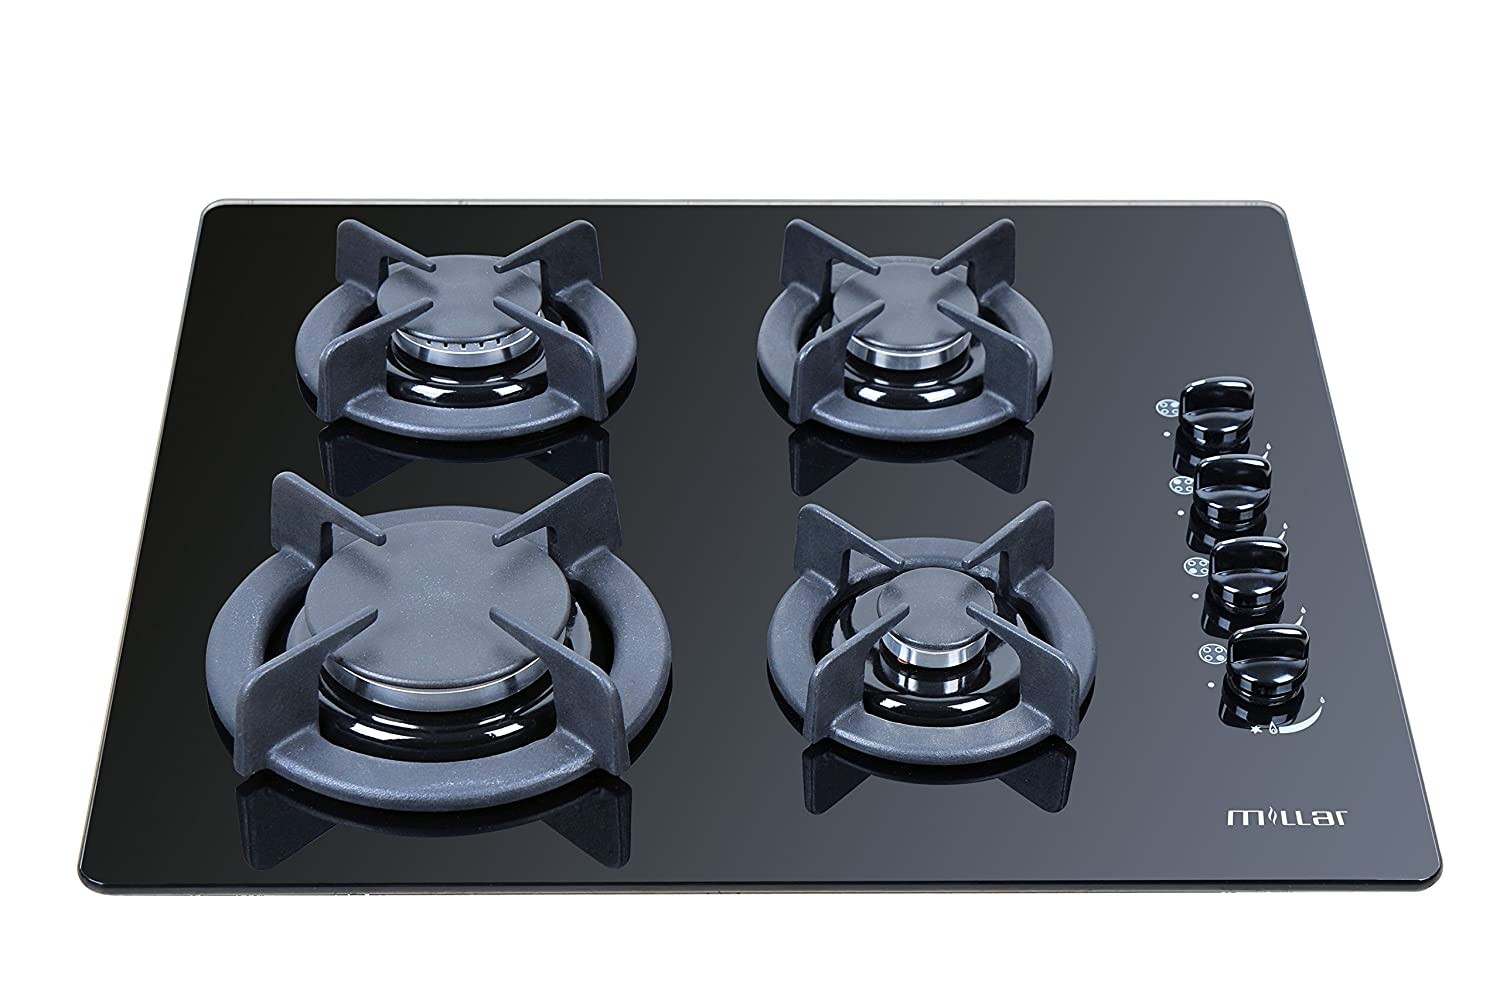 new cast iron 4 burner gas hob cooktop ceramic tempered glass 4 ring - Copy